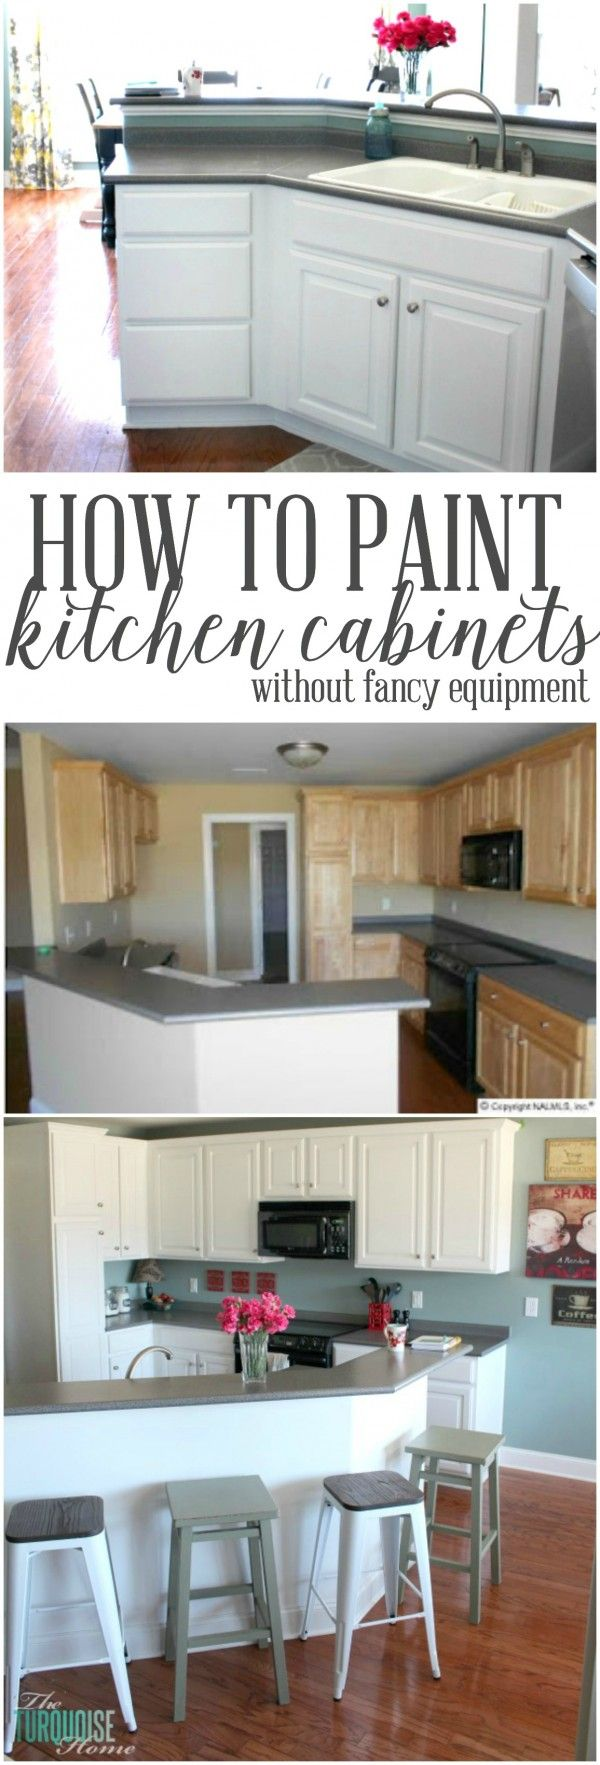 131 best diy kitchens images on pinterest kitchen decor kitchen